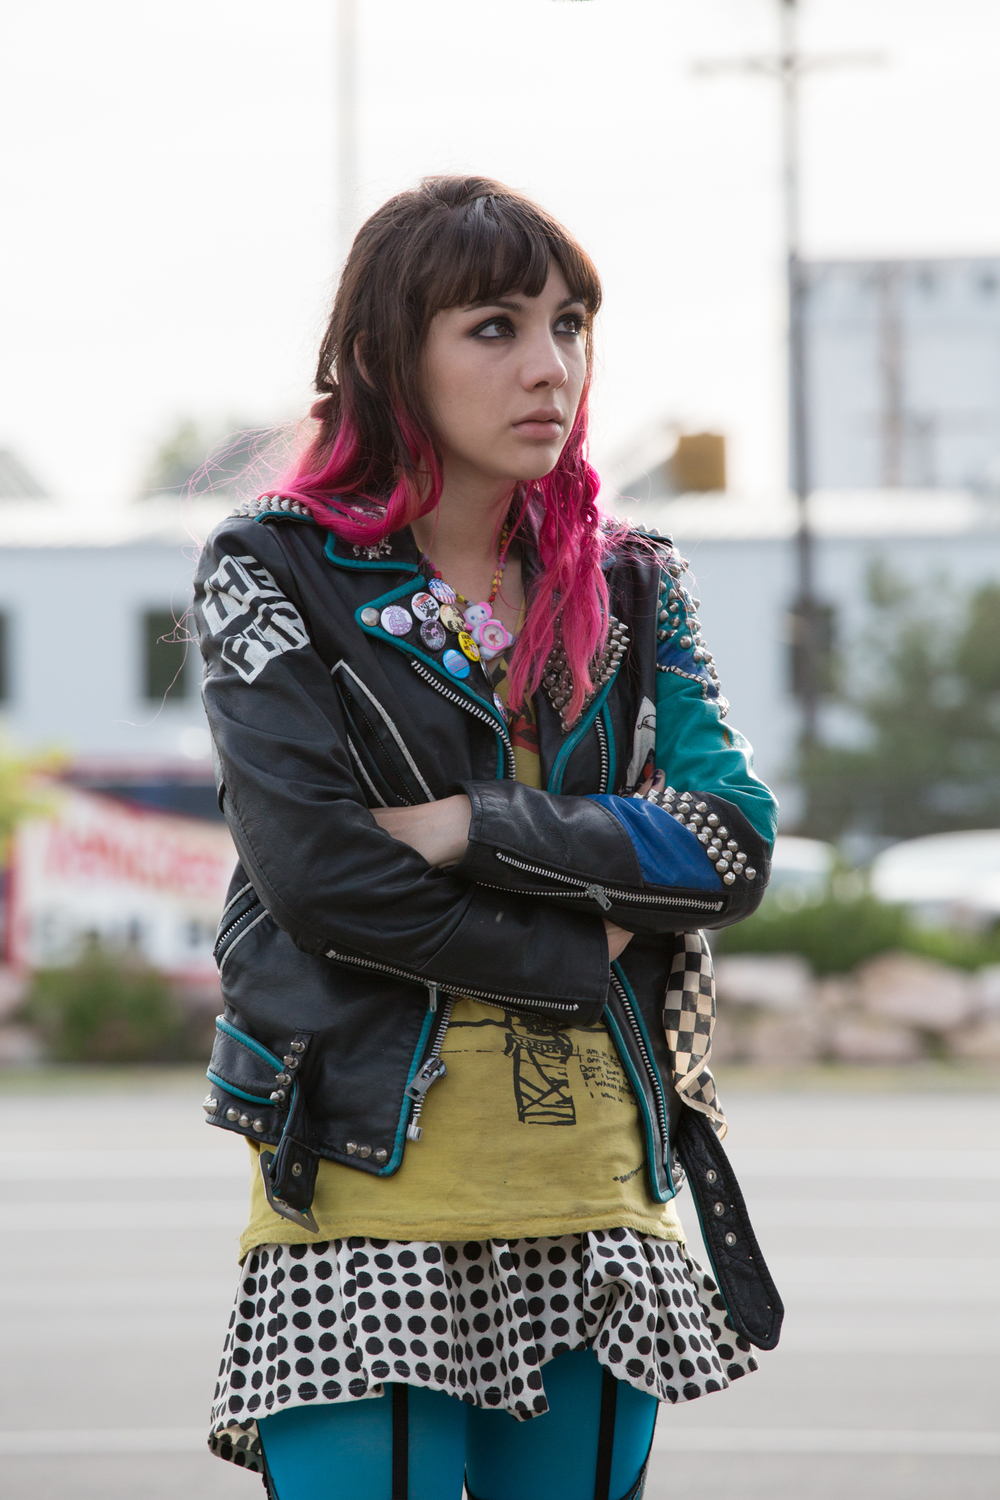 first-photos-from-punks-dead-slc-punk-25